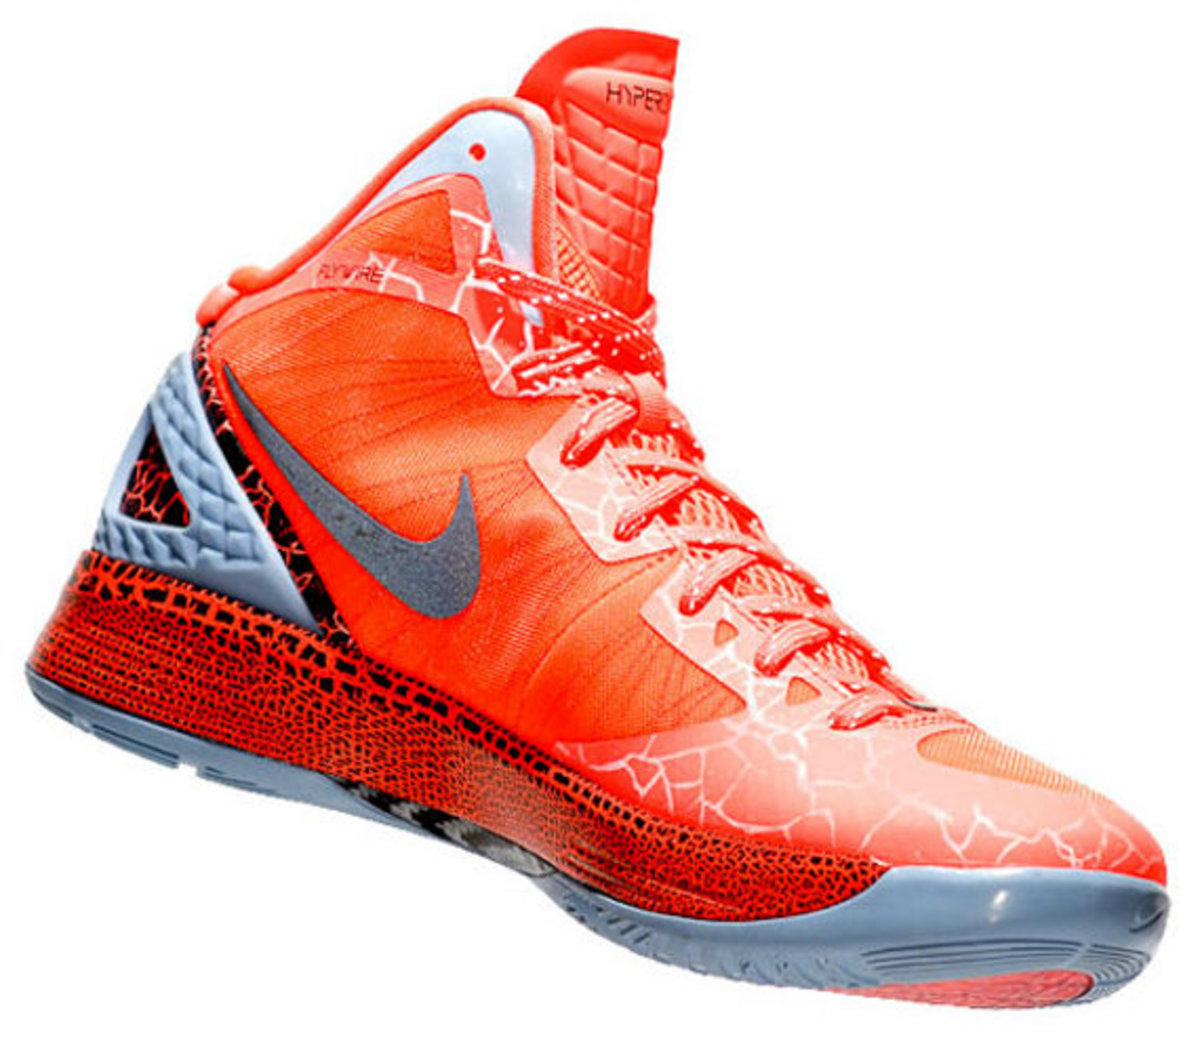 new product 9e6ad 96884 Nike Zoom Hyperdunk 2011 - Blake Griffin 10.0   Release Reminder ...